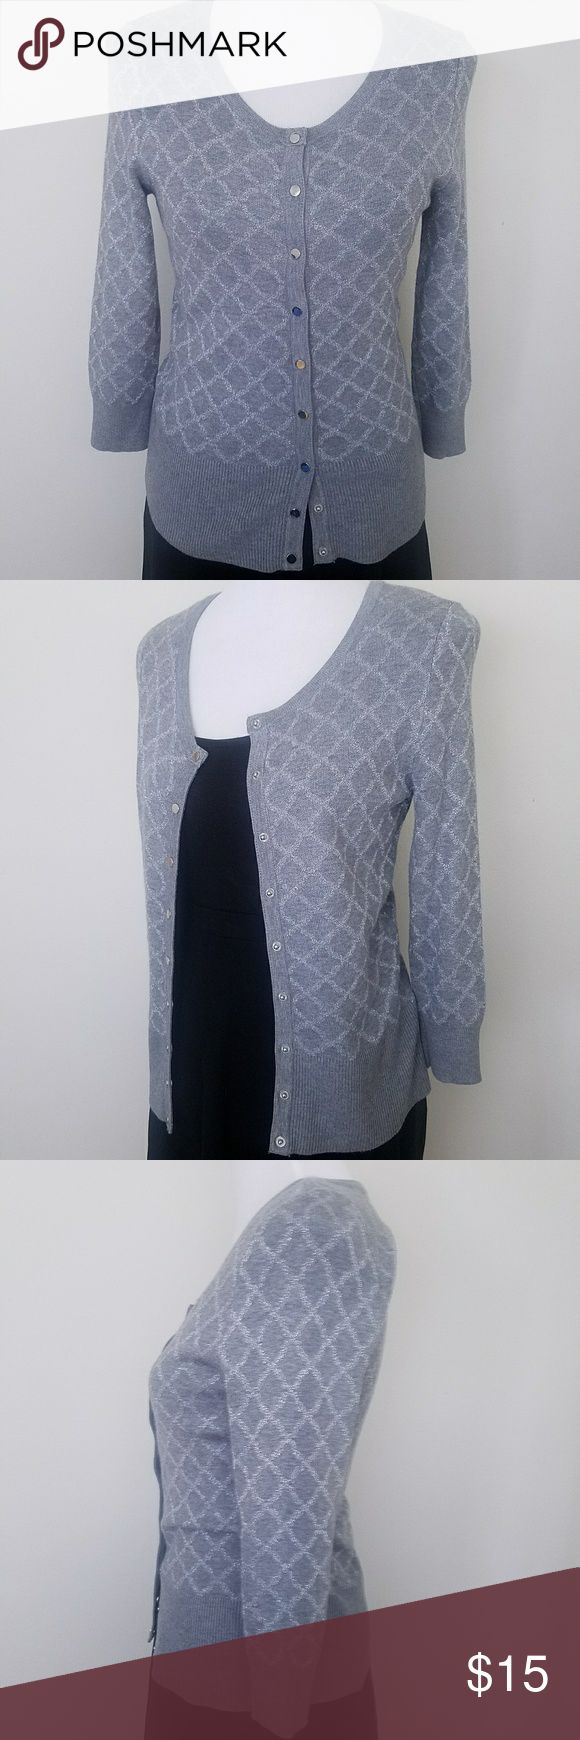 White House Black Market Gray & Silver Cardigan Soft, lightweight gray cardigan with silver diamond pattern and silver snap buttons. Great for layering in the office or for casual days when you want to dress better than your friends. White House Black Market Sweaters Cardigans